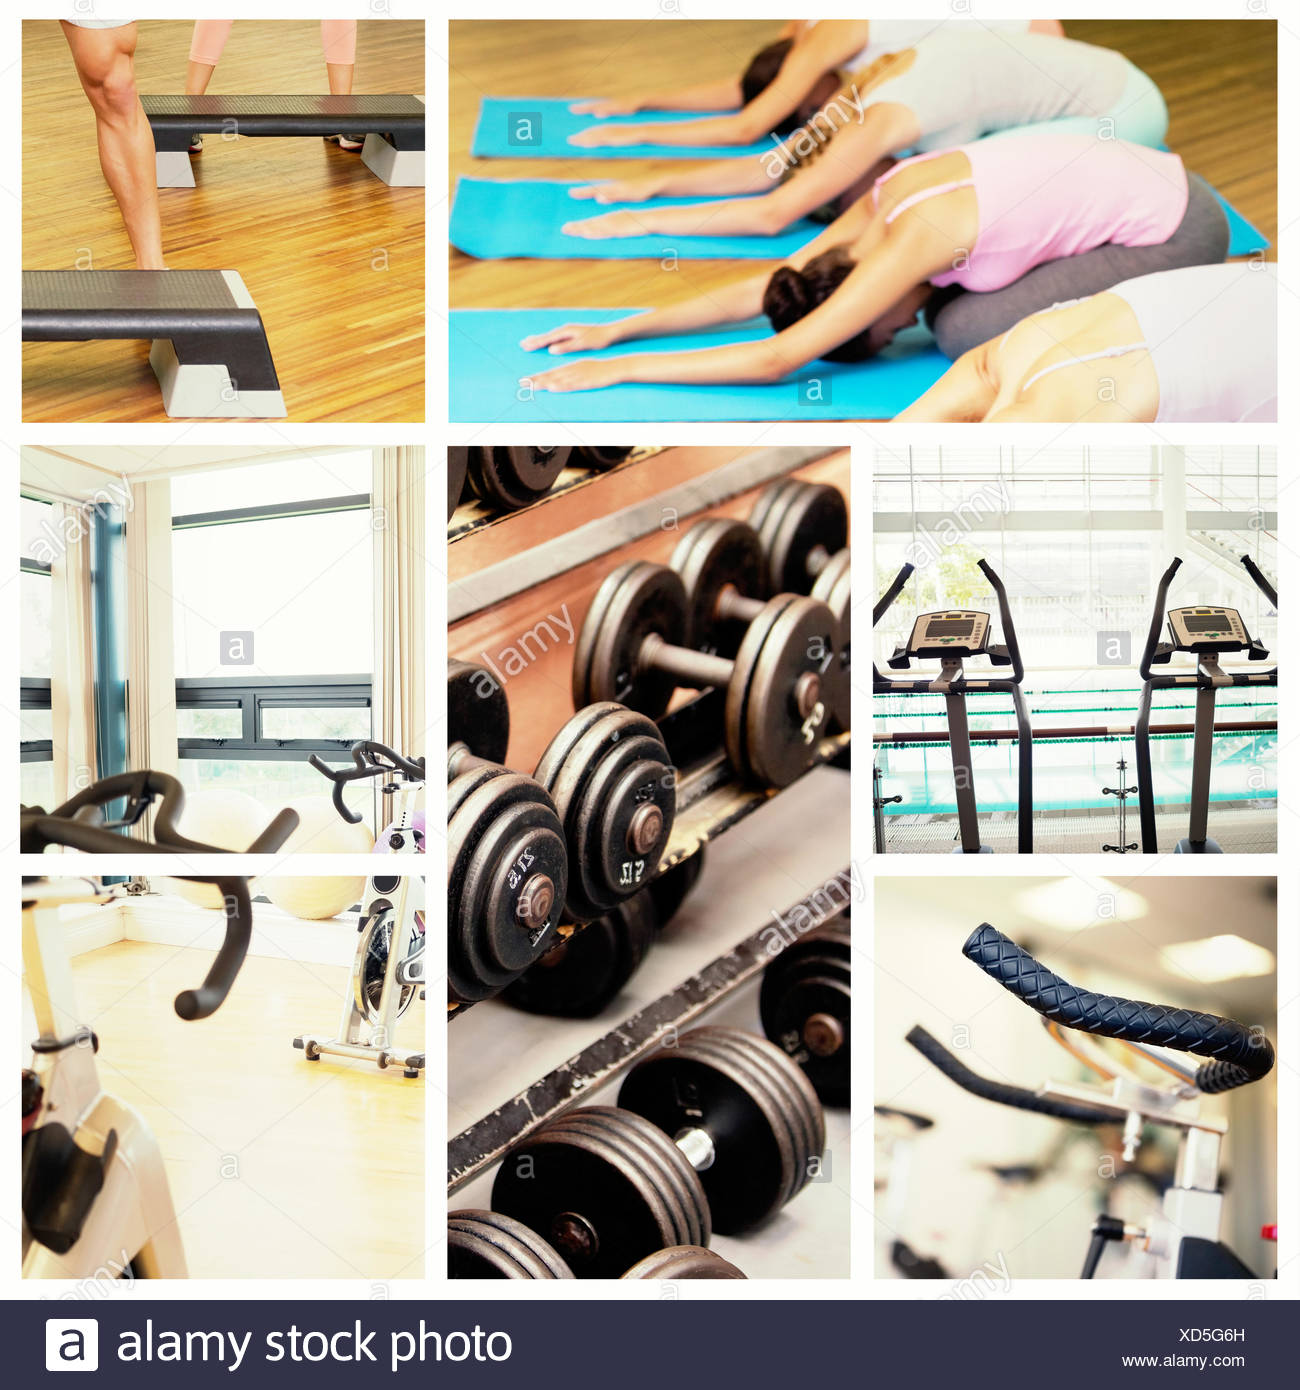 Composite image of yoga class in childs pose in fitness studio - Stock Image